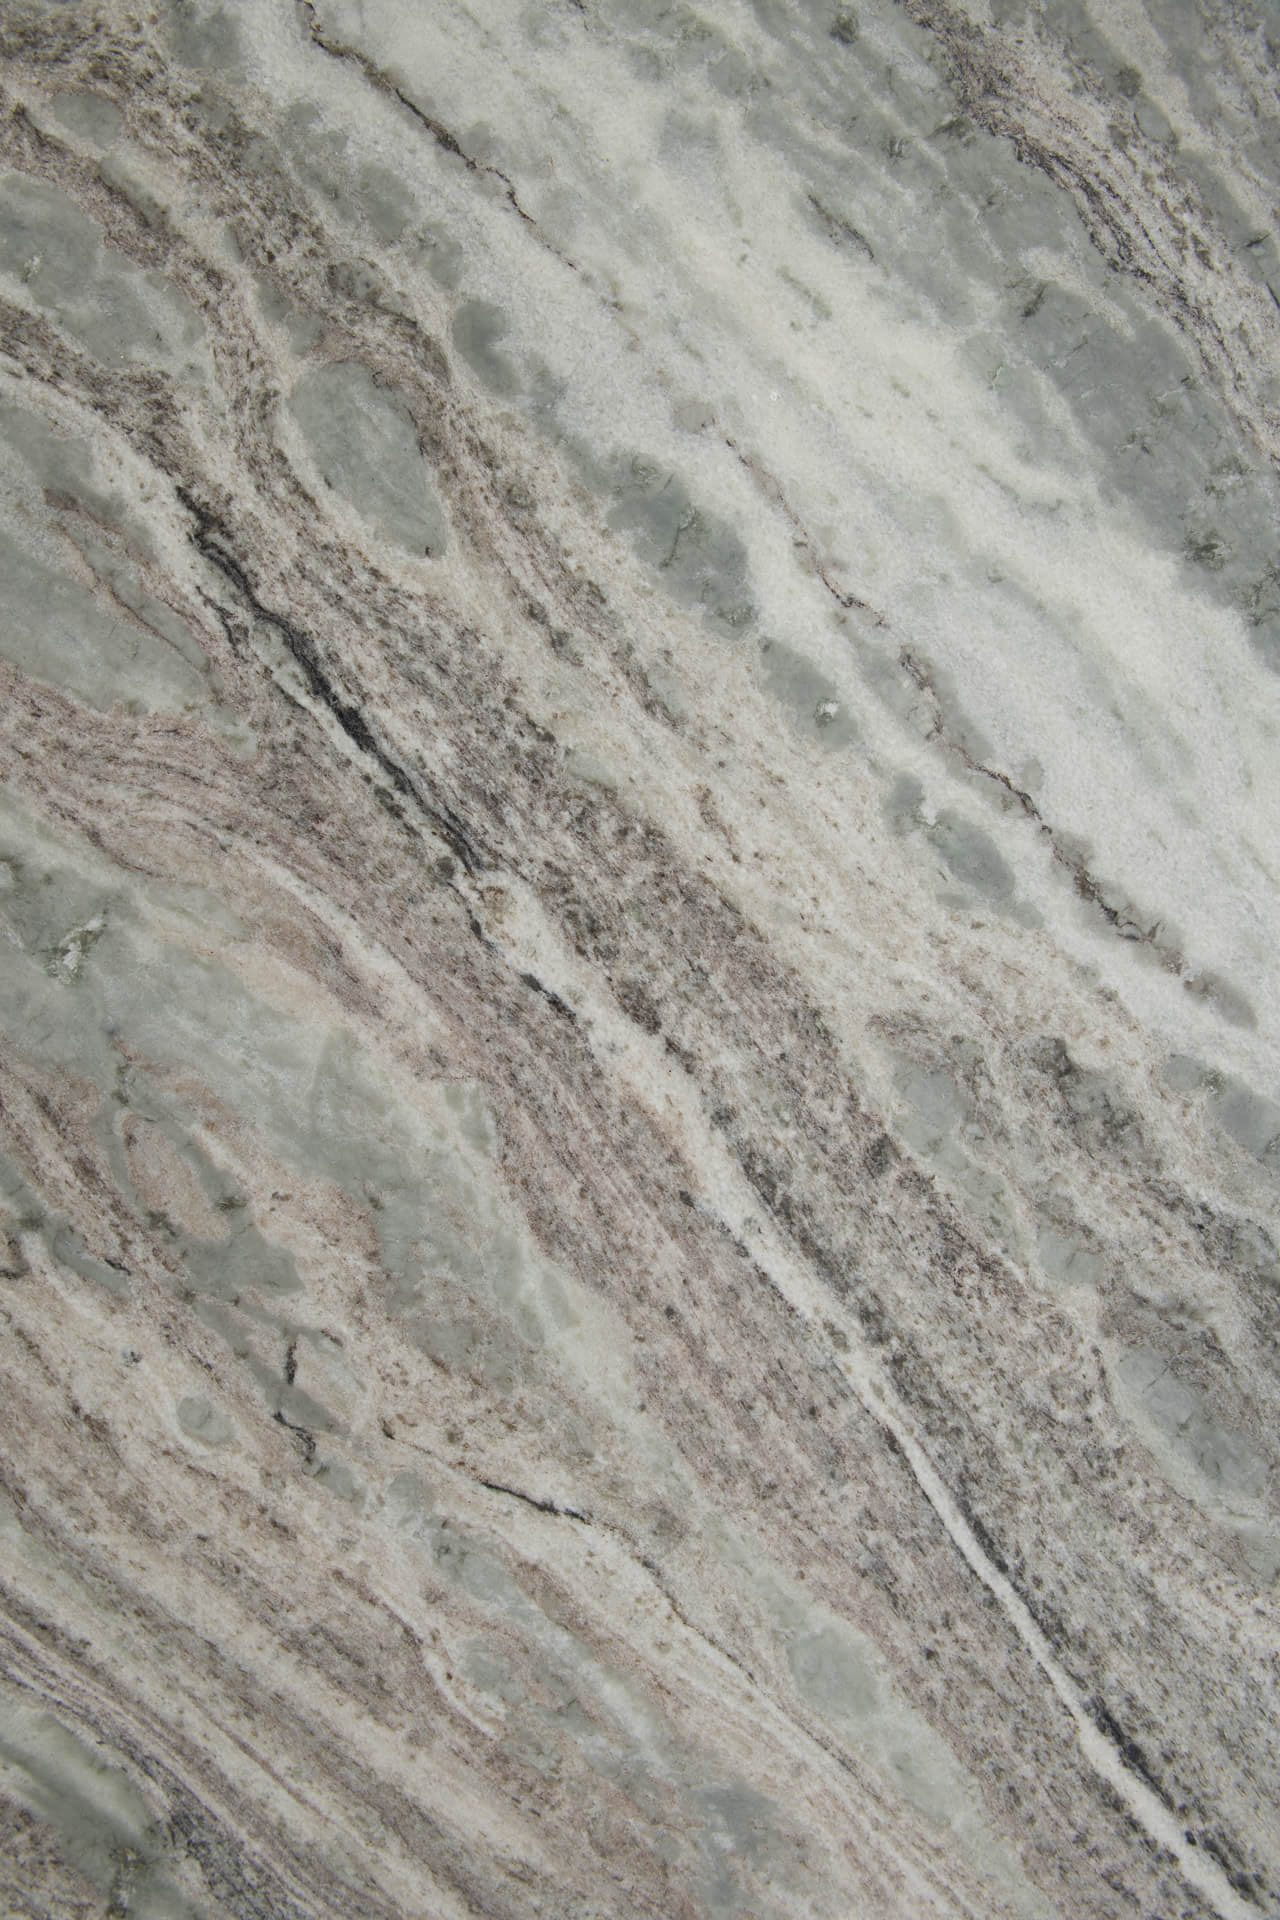 fantasy brown 040 cu countertop - by Magnolia Countertops. A Countertop fabricator of Granite Countertops, Marble Countertops, and Quartz Countertops in Cookeville and Crossville TN.